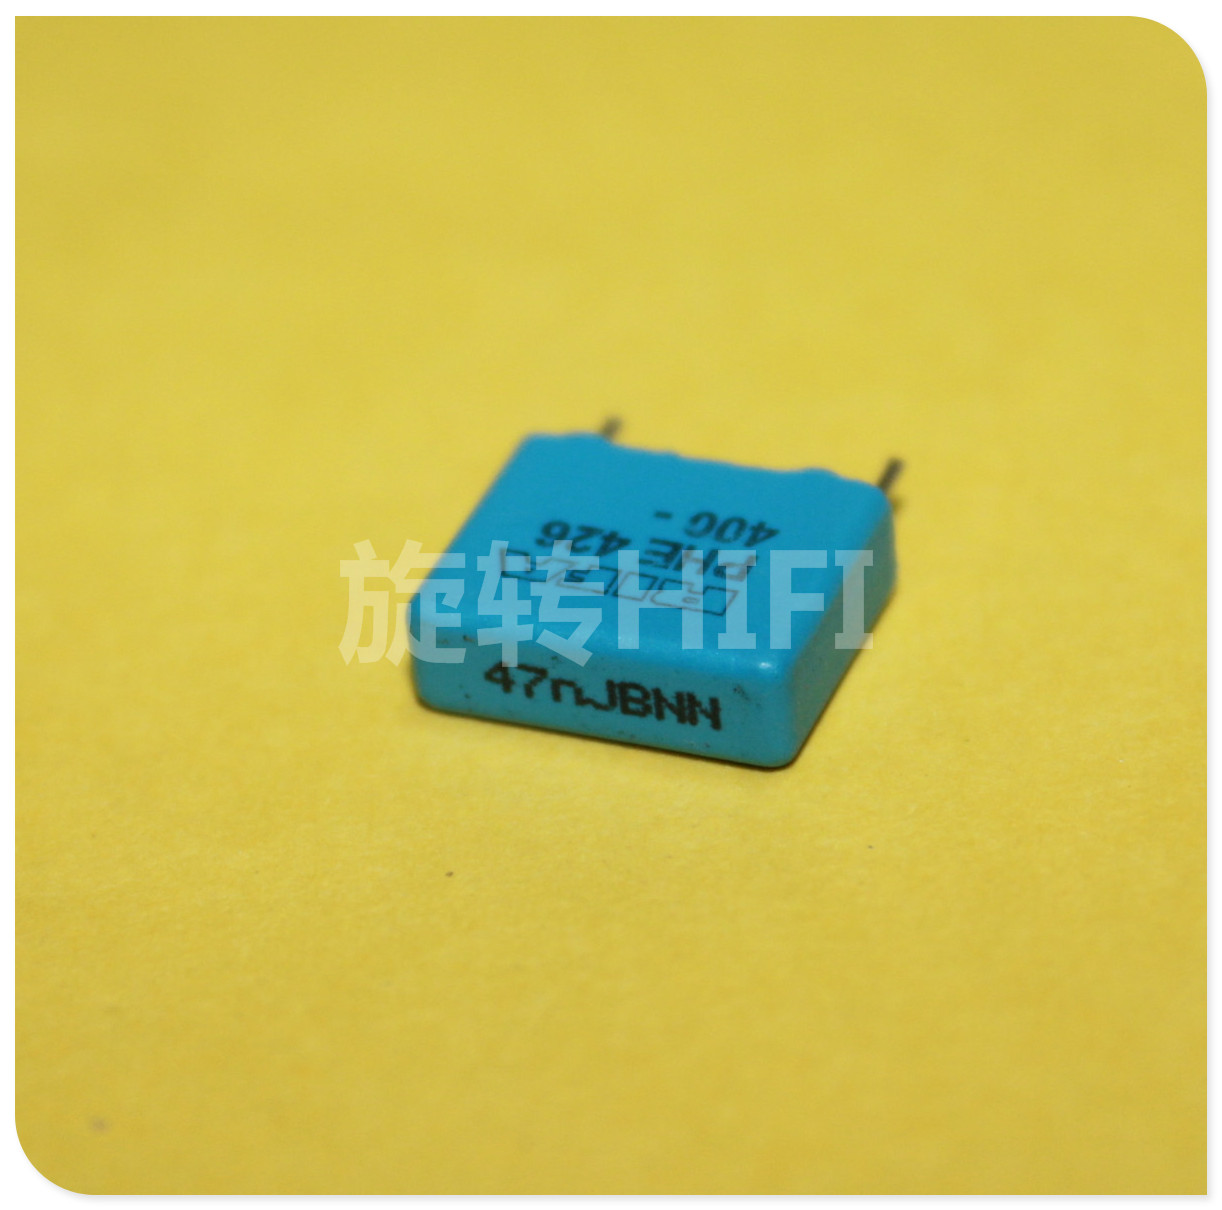 10PCS RIFA PHE426 0.047UF 400V P10MM MKP 473/400V Audio Blue Film Capacitor 426 0.047u 400VDC 47NF 473